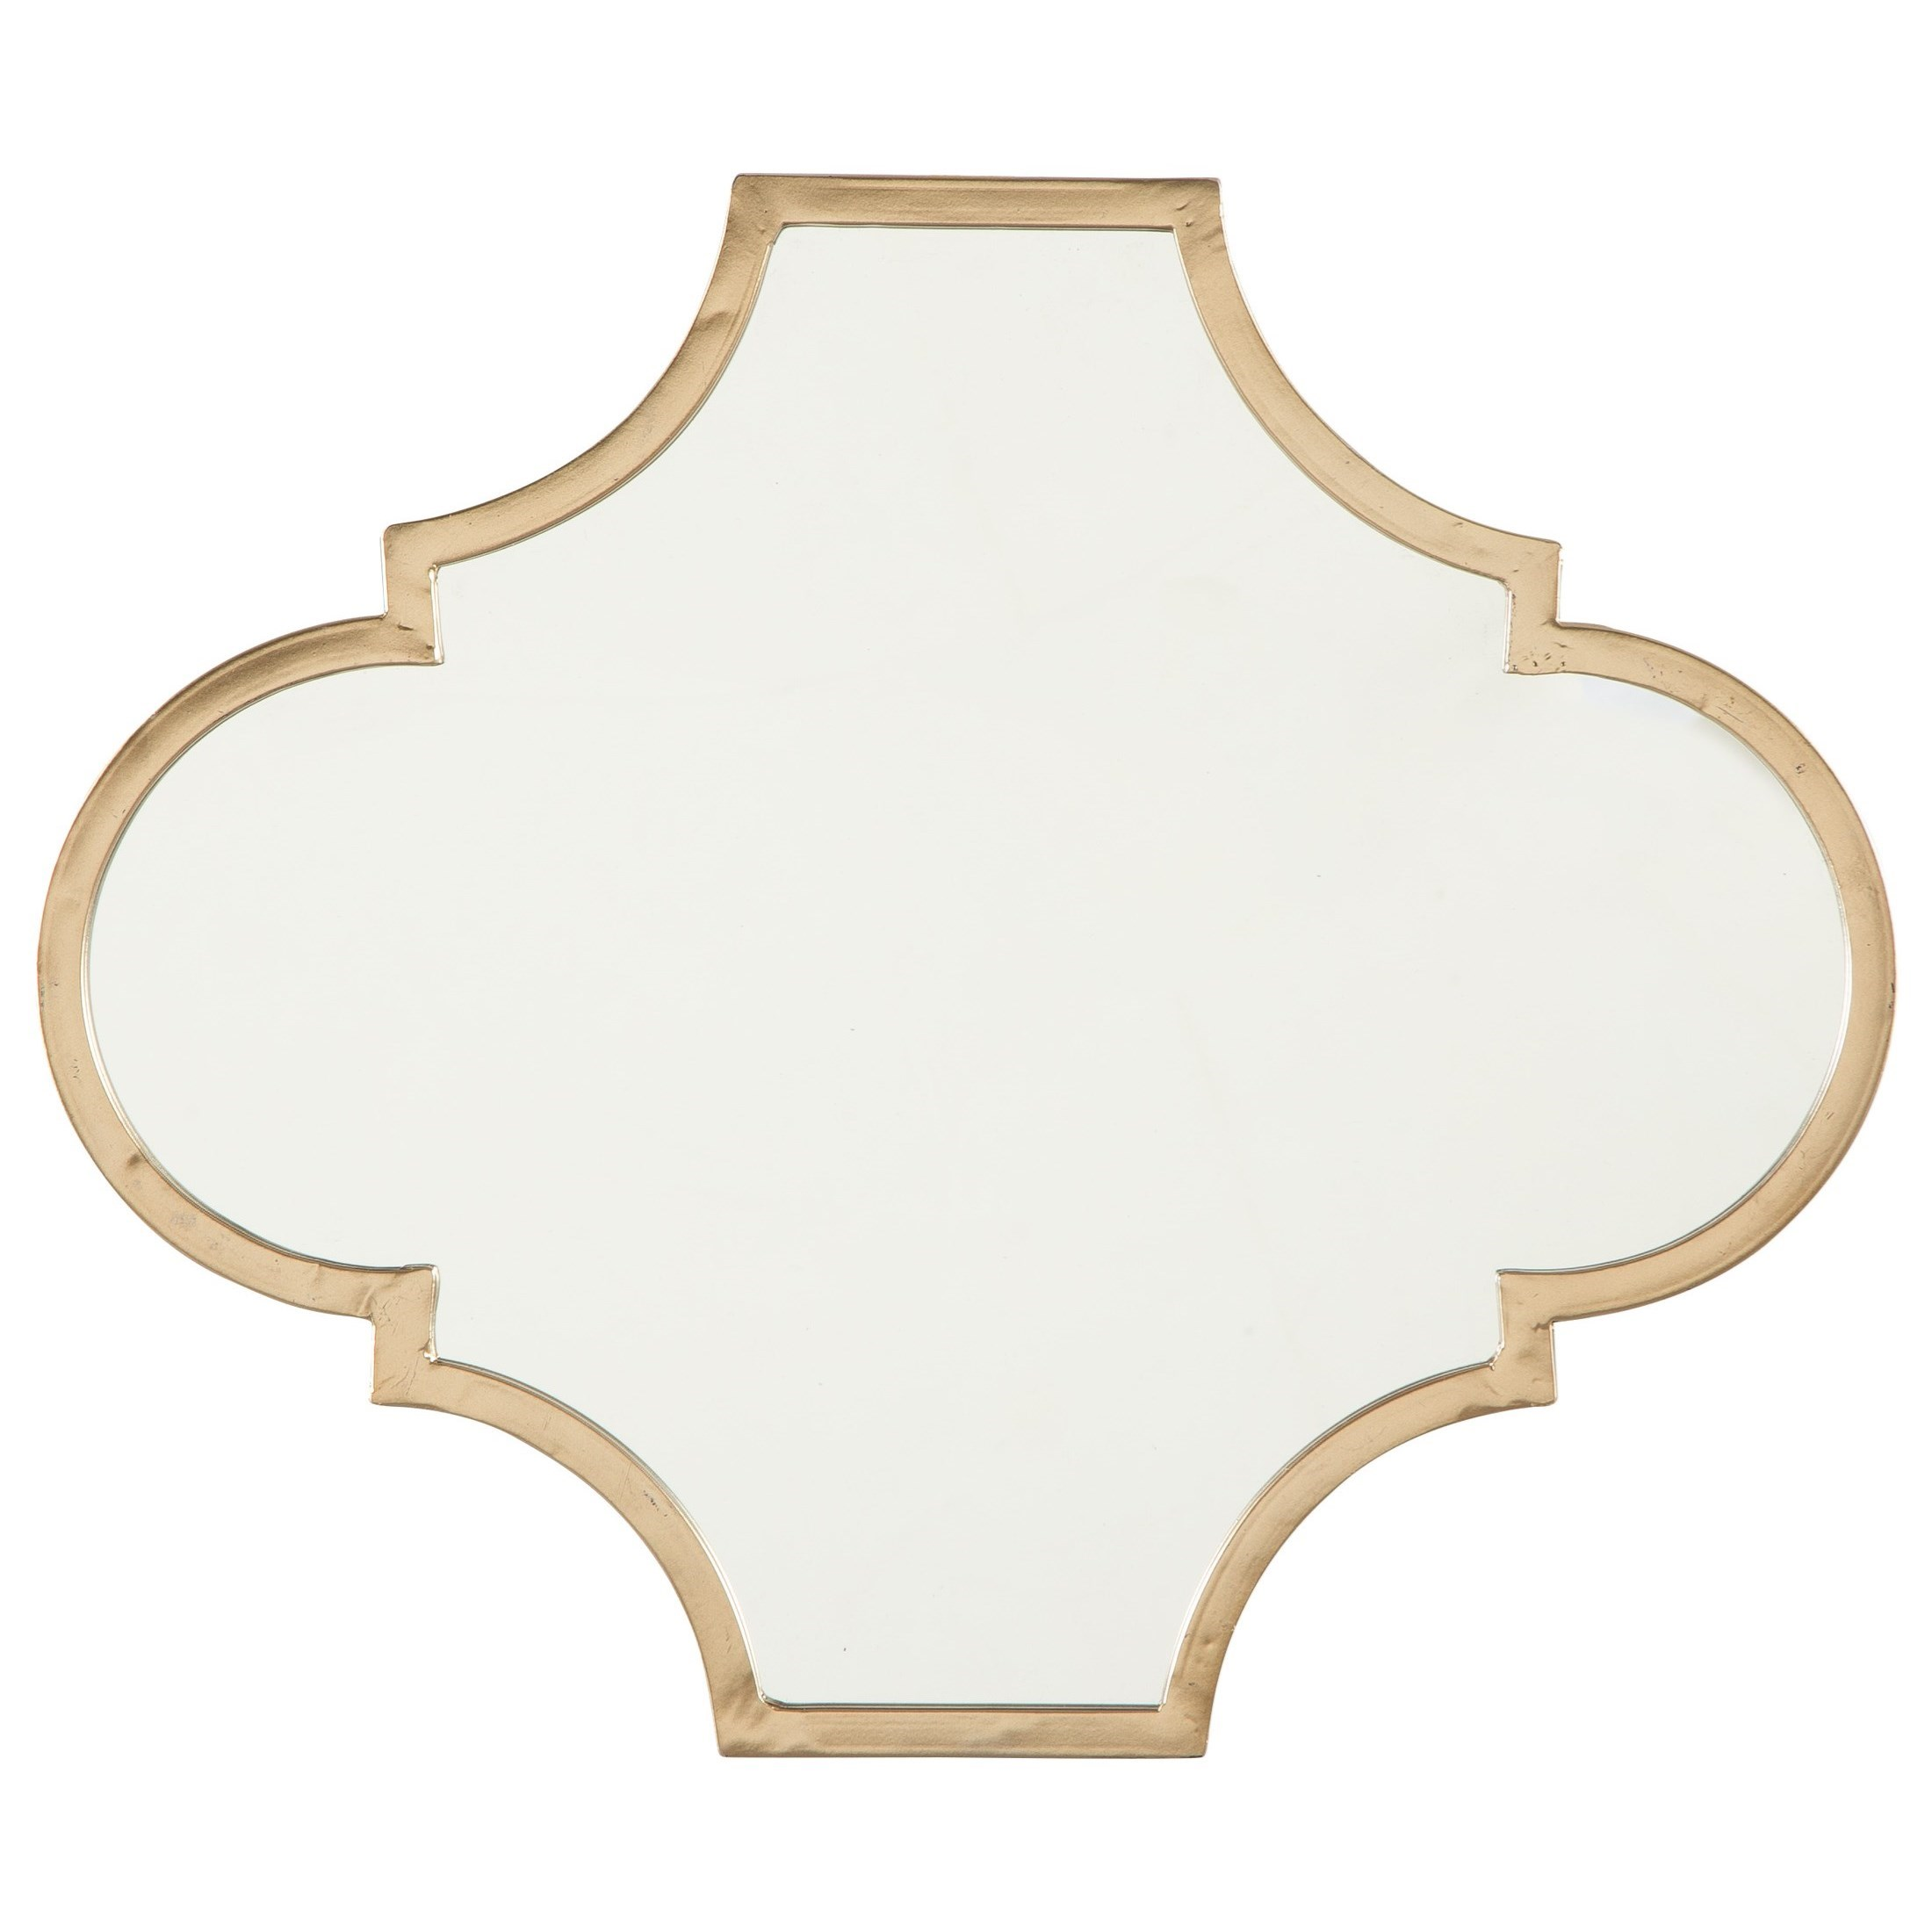 Accent Mirrors Callie Gold Finish Accent Mirror by Signature Design by Ashley at Standard Furniture